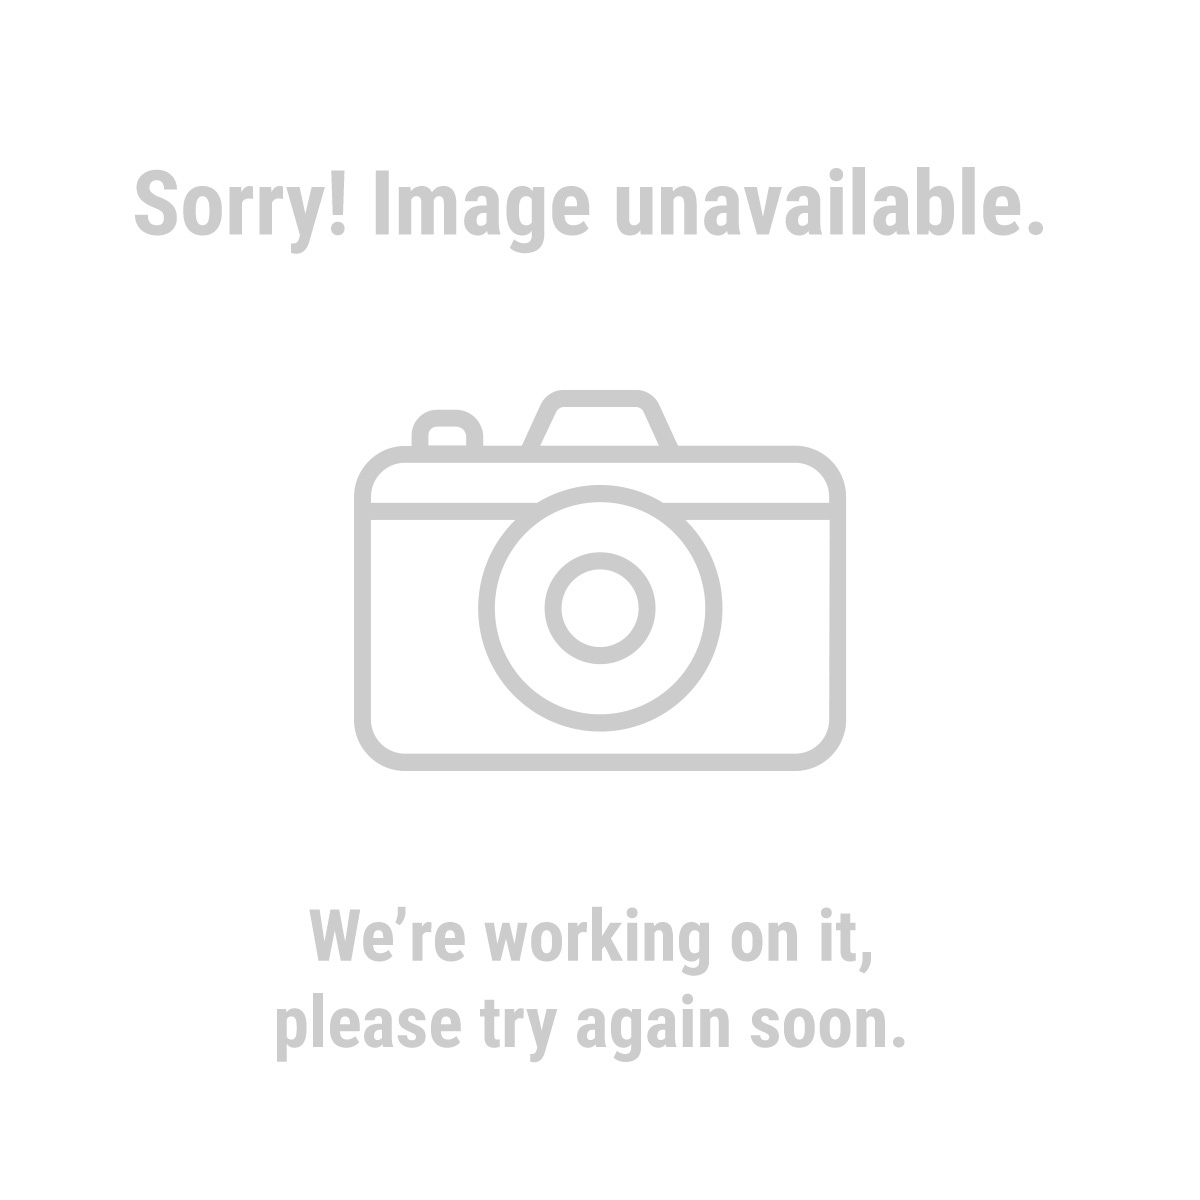 Storm Cat 60338 900 Peak/800 Running Watts, 2 HP  (63cc) Gas Generator